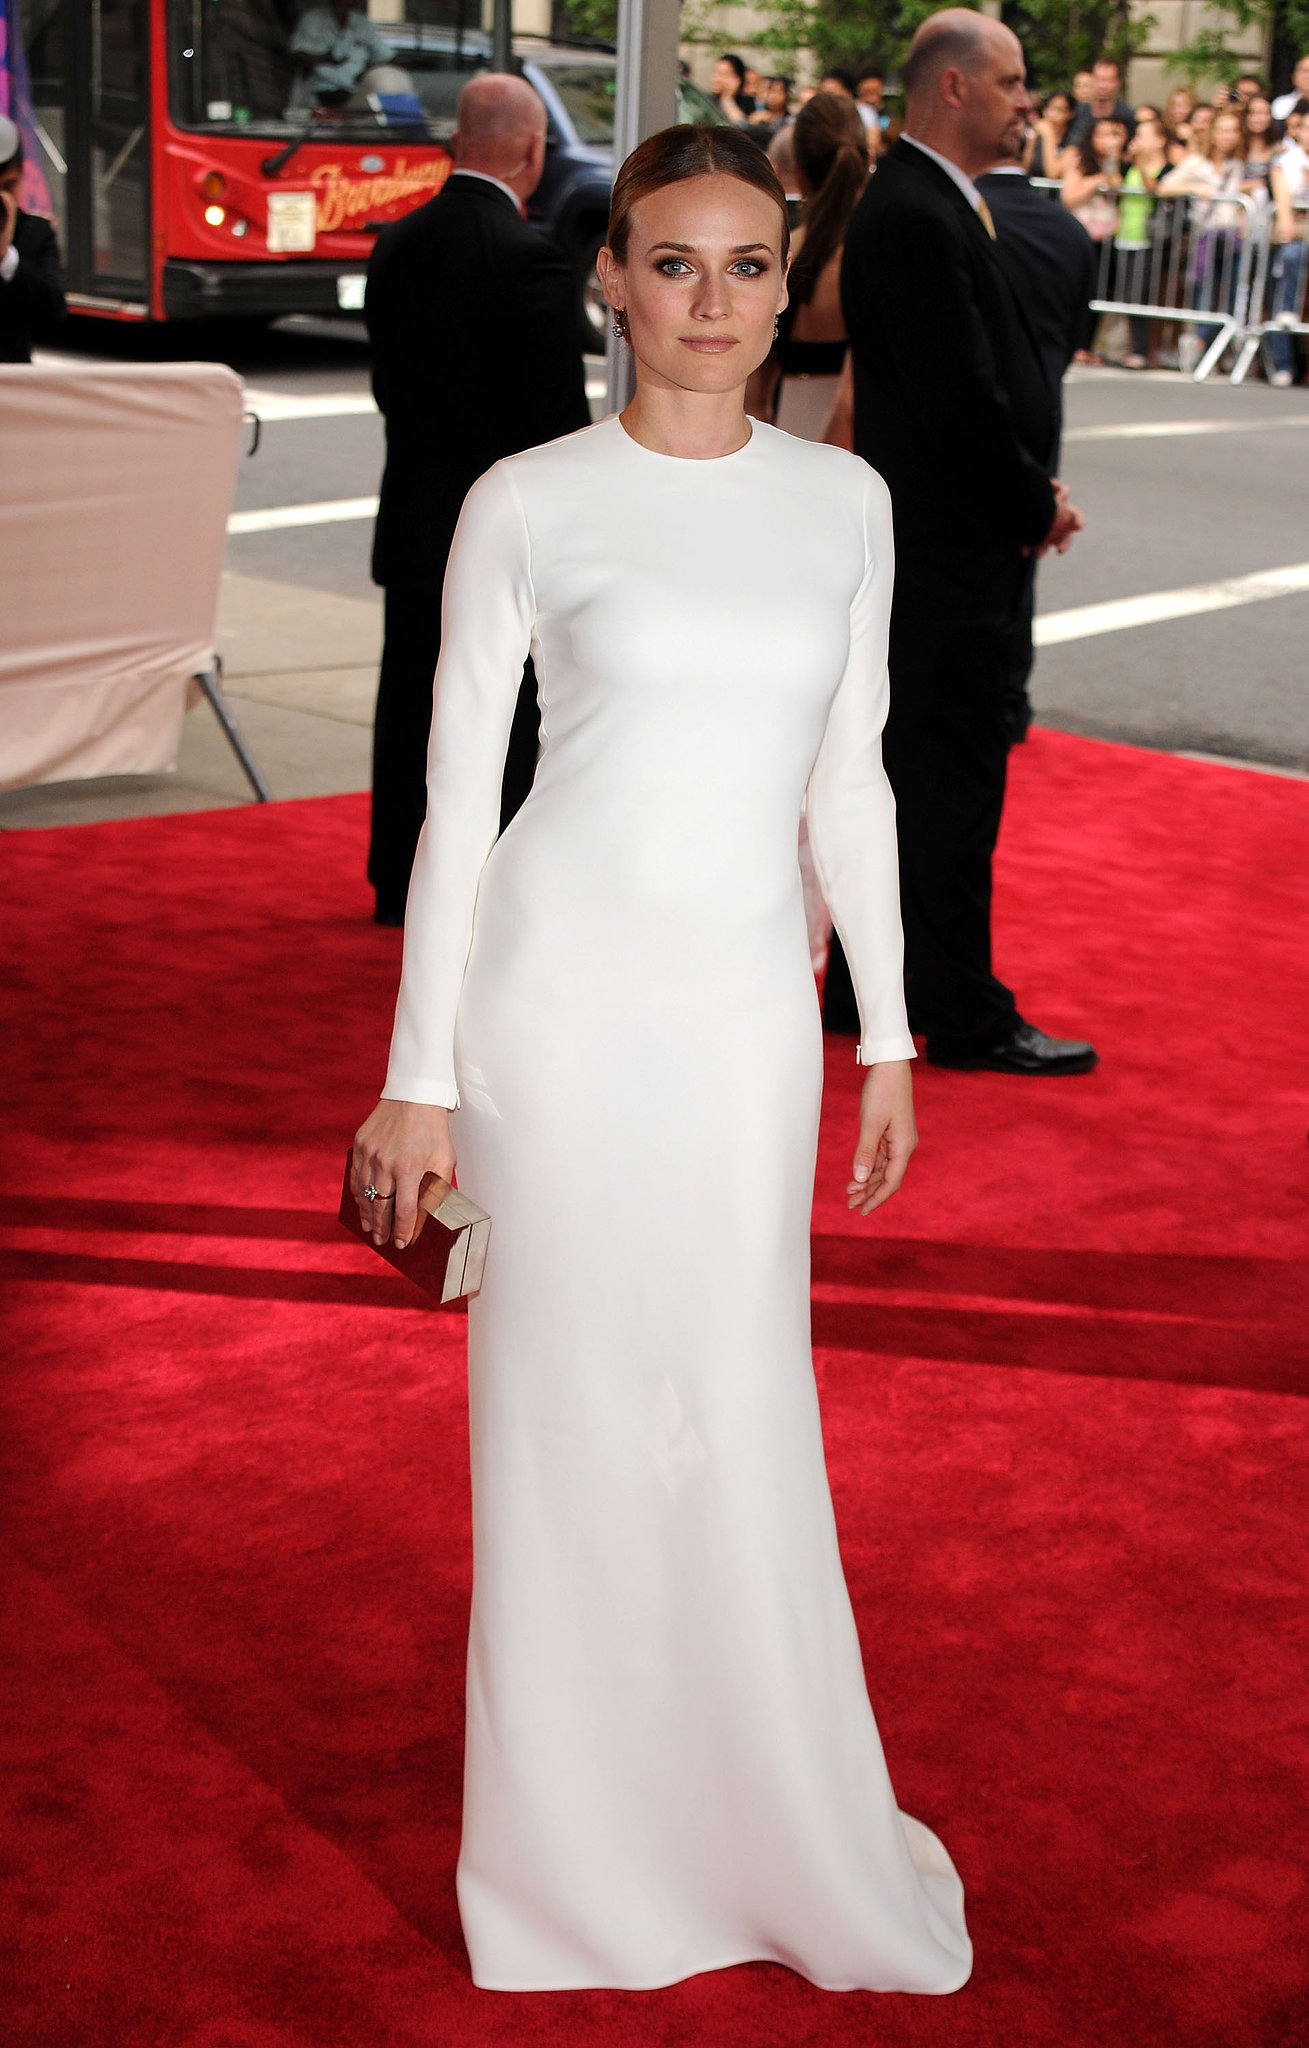 Diane wore minimalist Calvin Klein at the Met Gala in 2010.